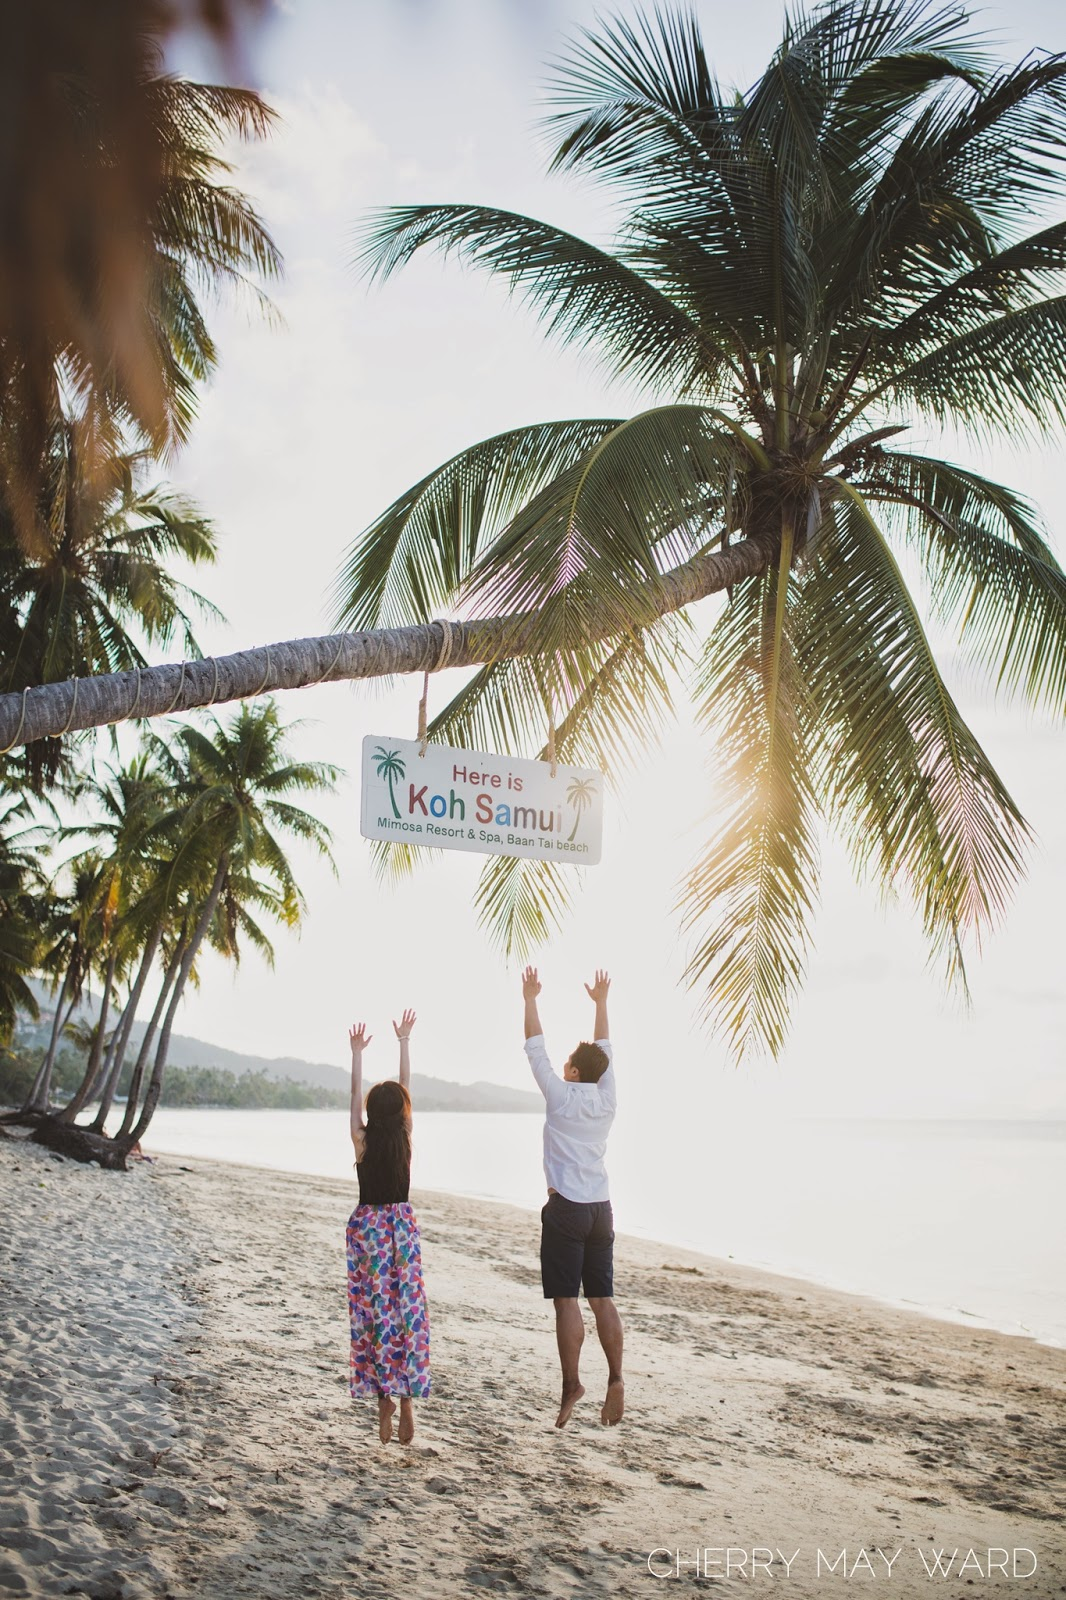 Here is Koh Samui sign, Ban Tai beach, fun engagement photos, couple jumping on the beach, Thailand